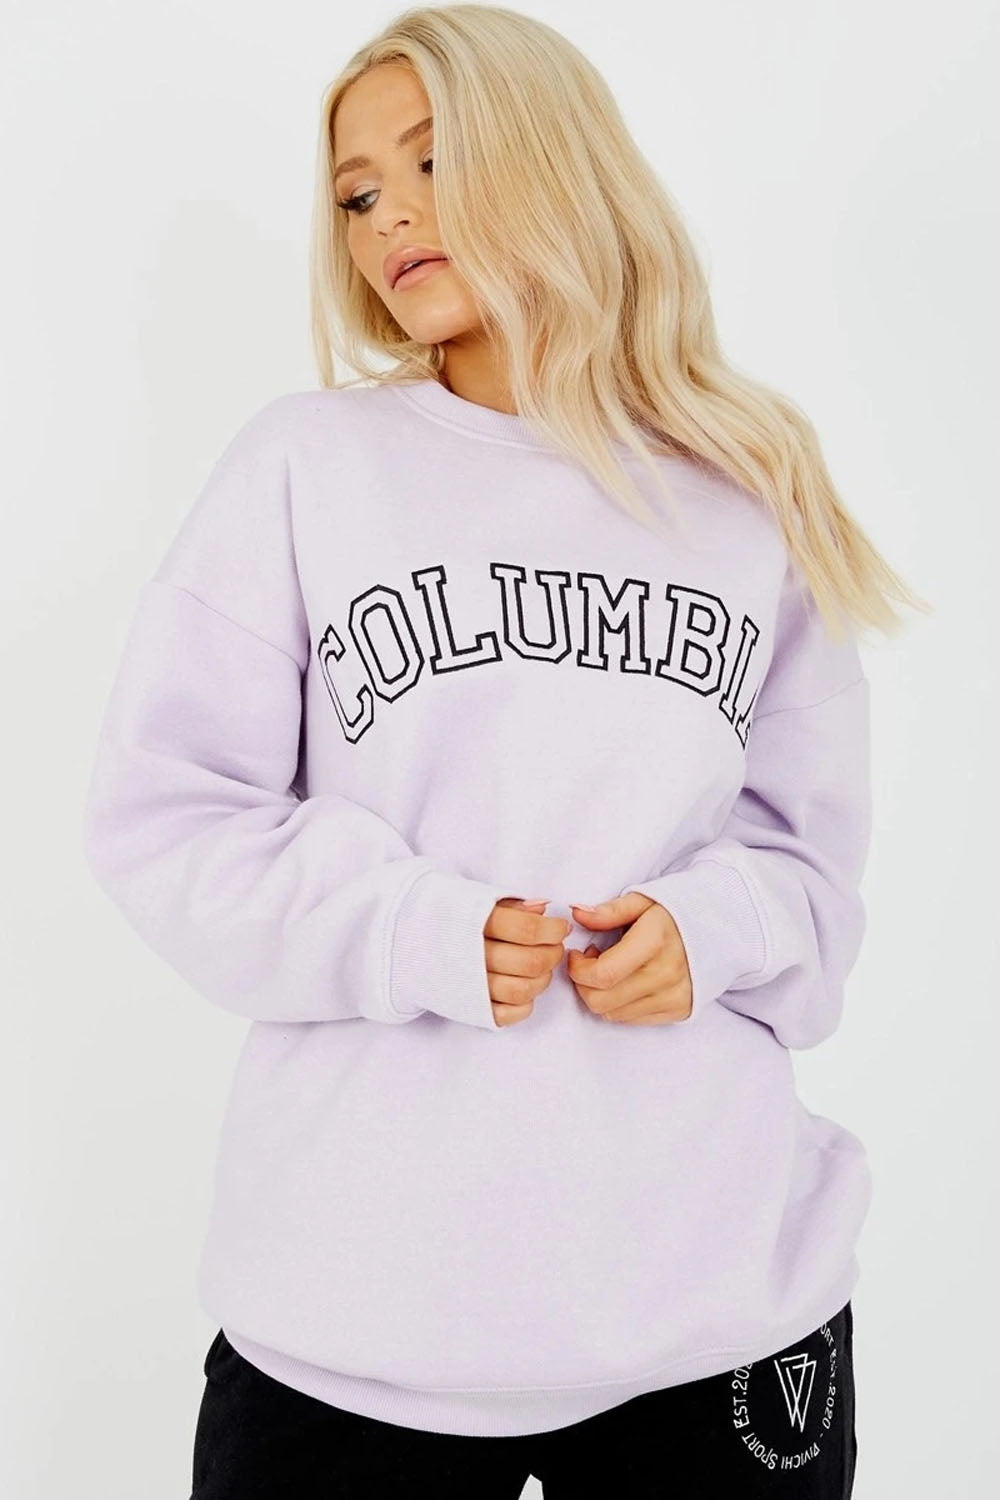 Lilac COLUMBIA Embroidery Sweatshirt Jumper - Sarah